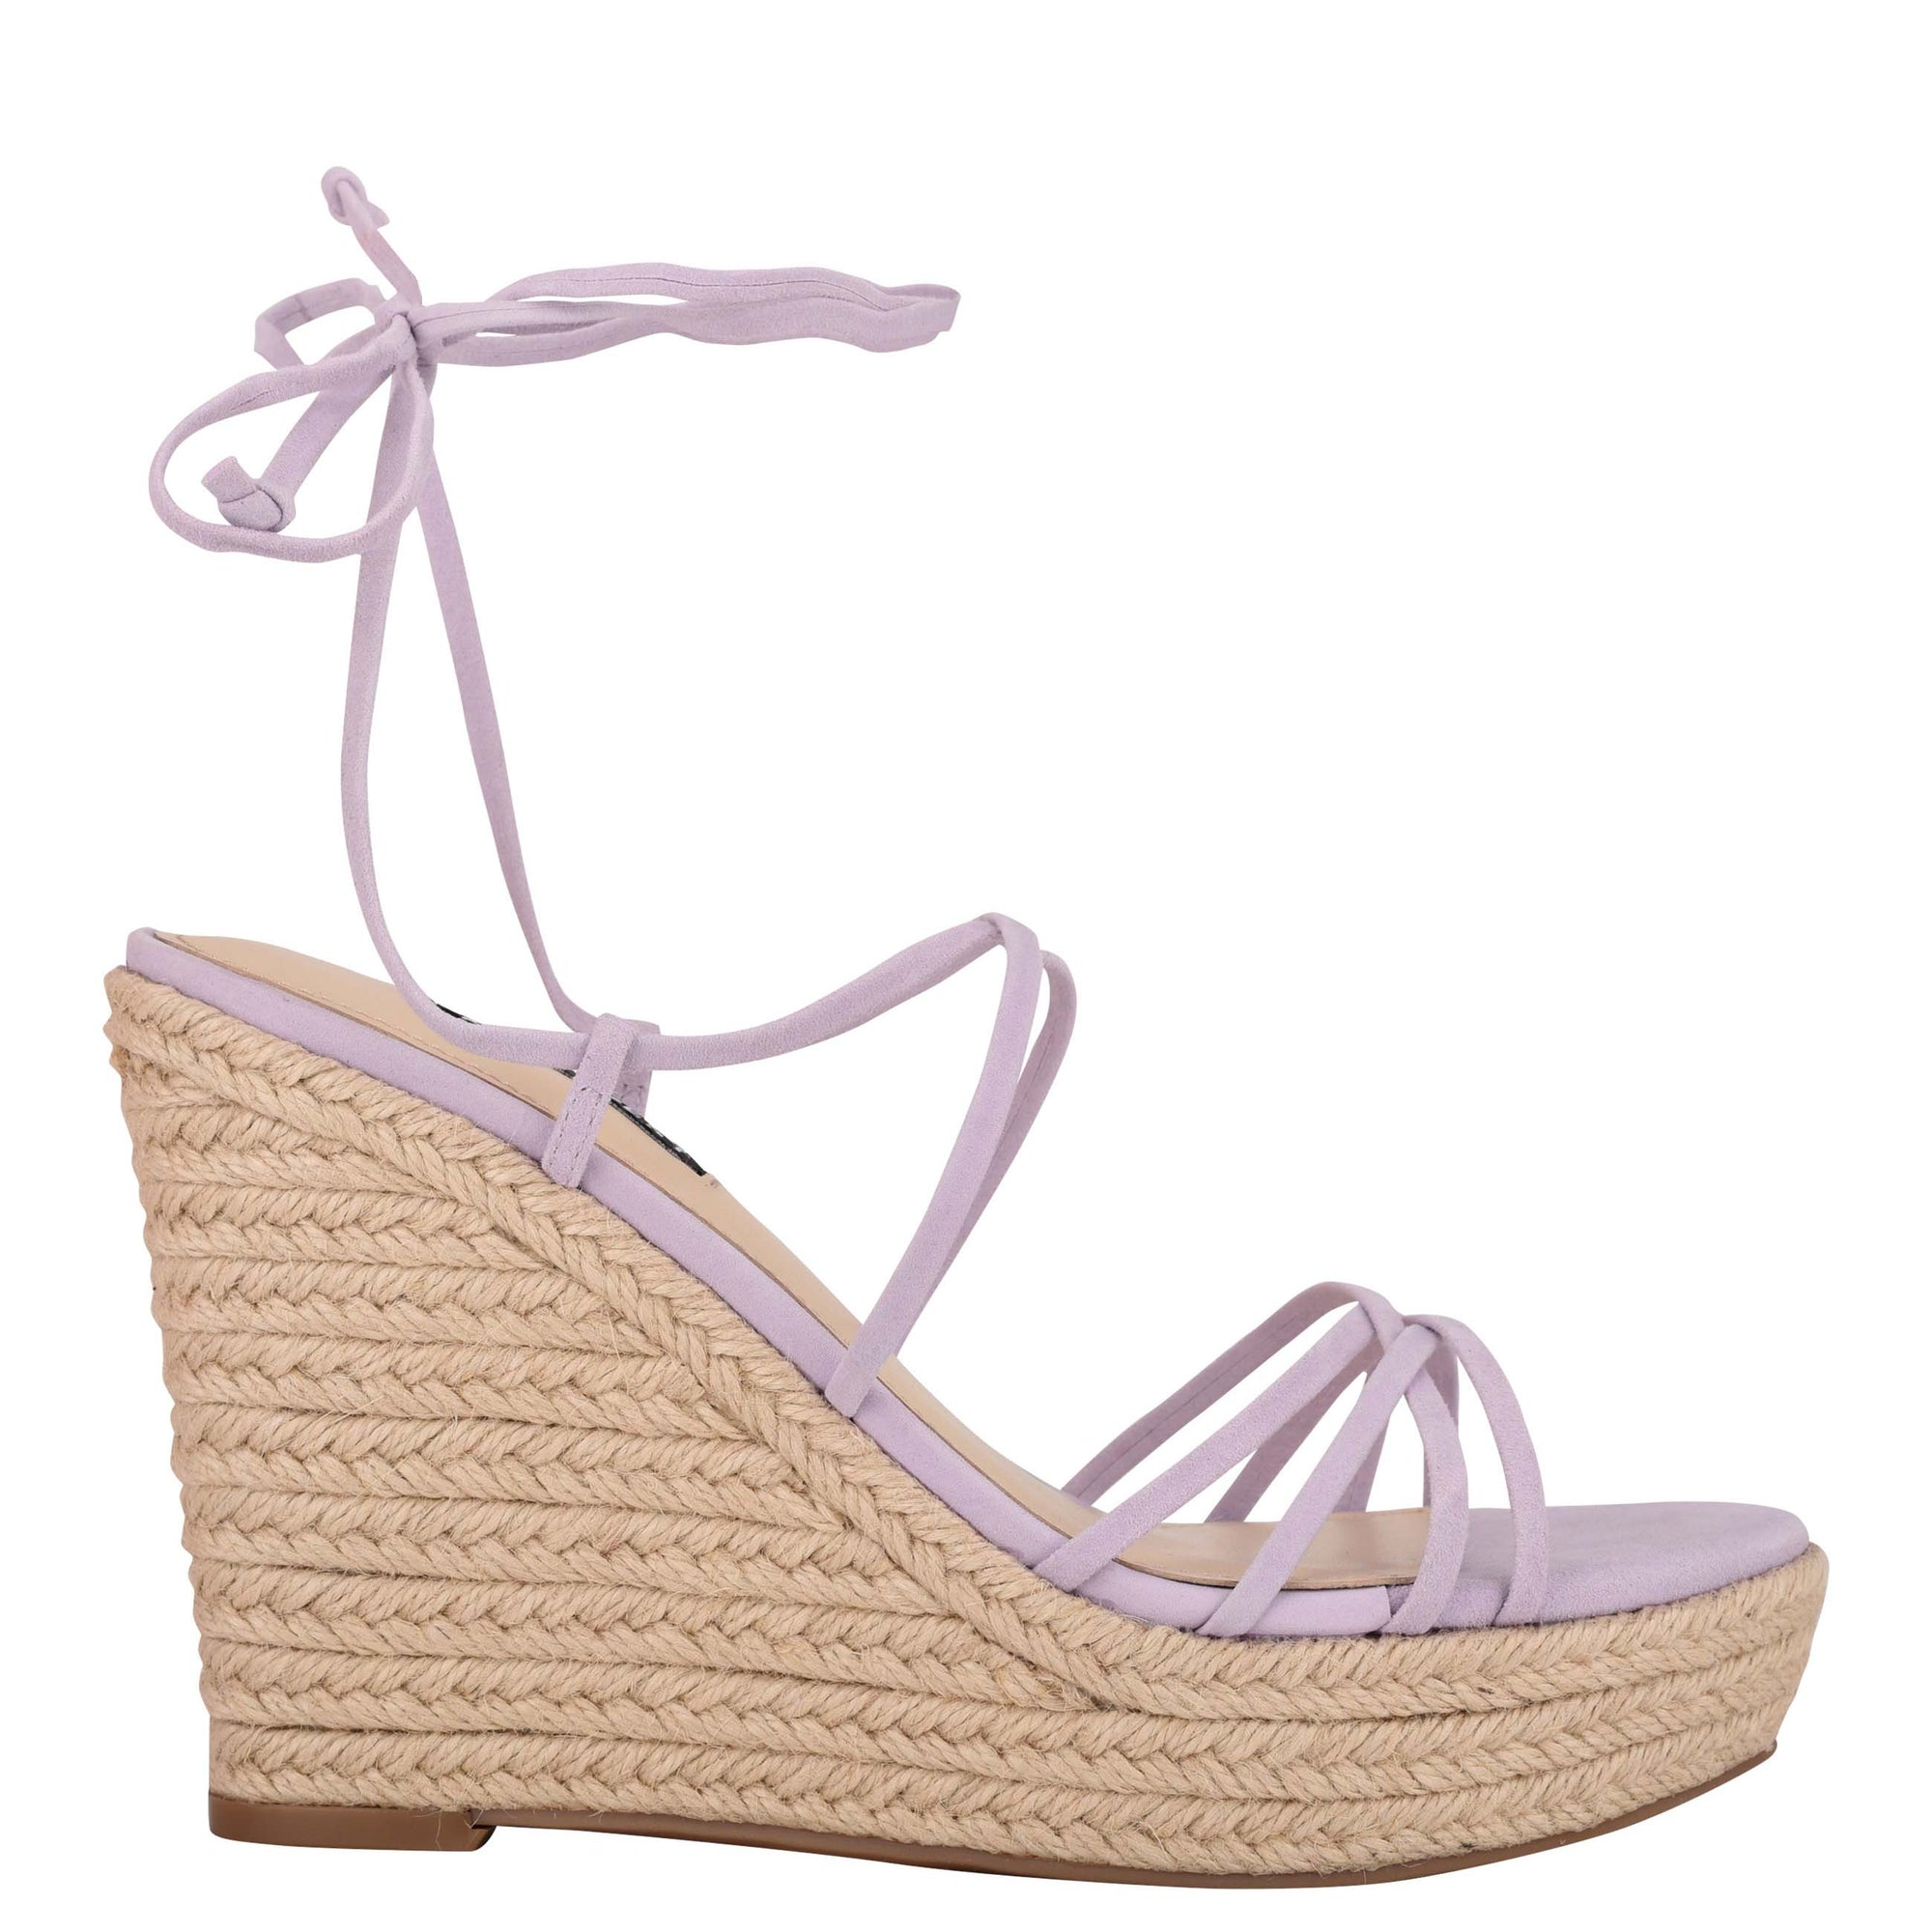 Havefun Ankle Wrap Espadrille Wedge Sandals